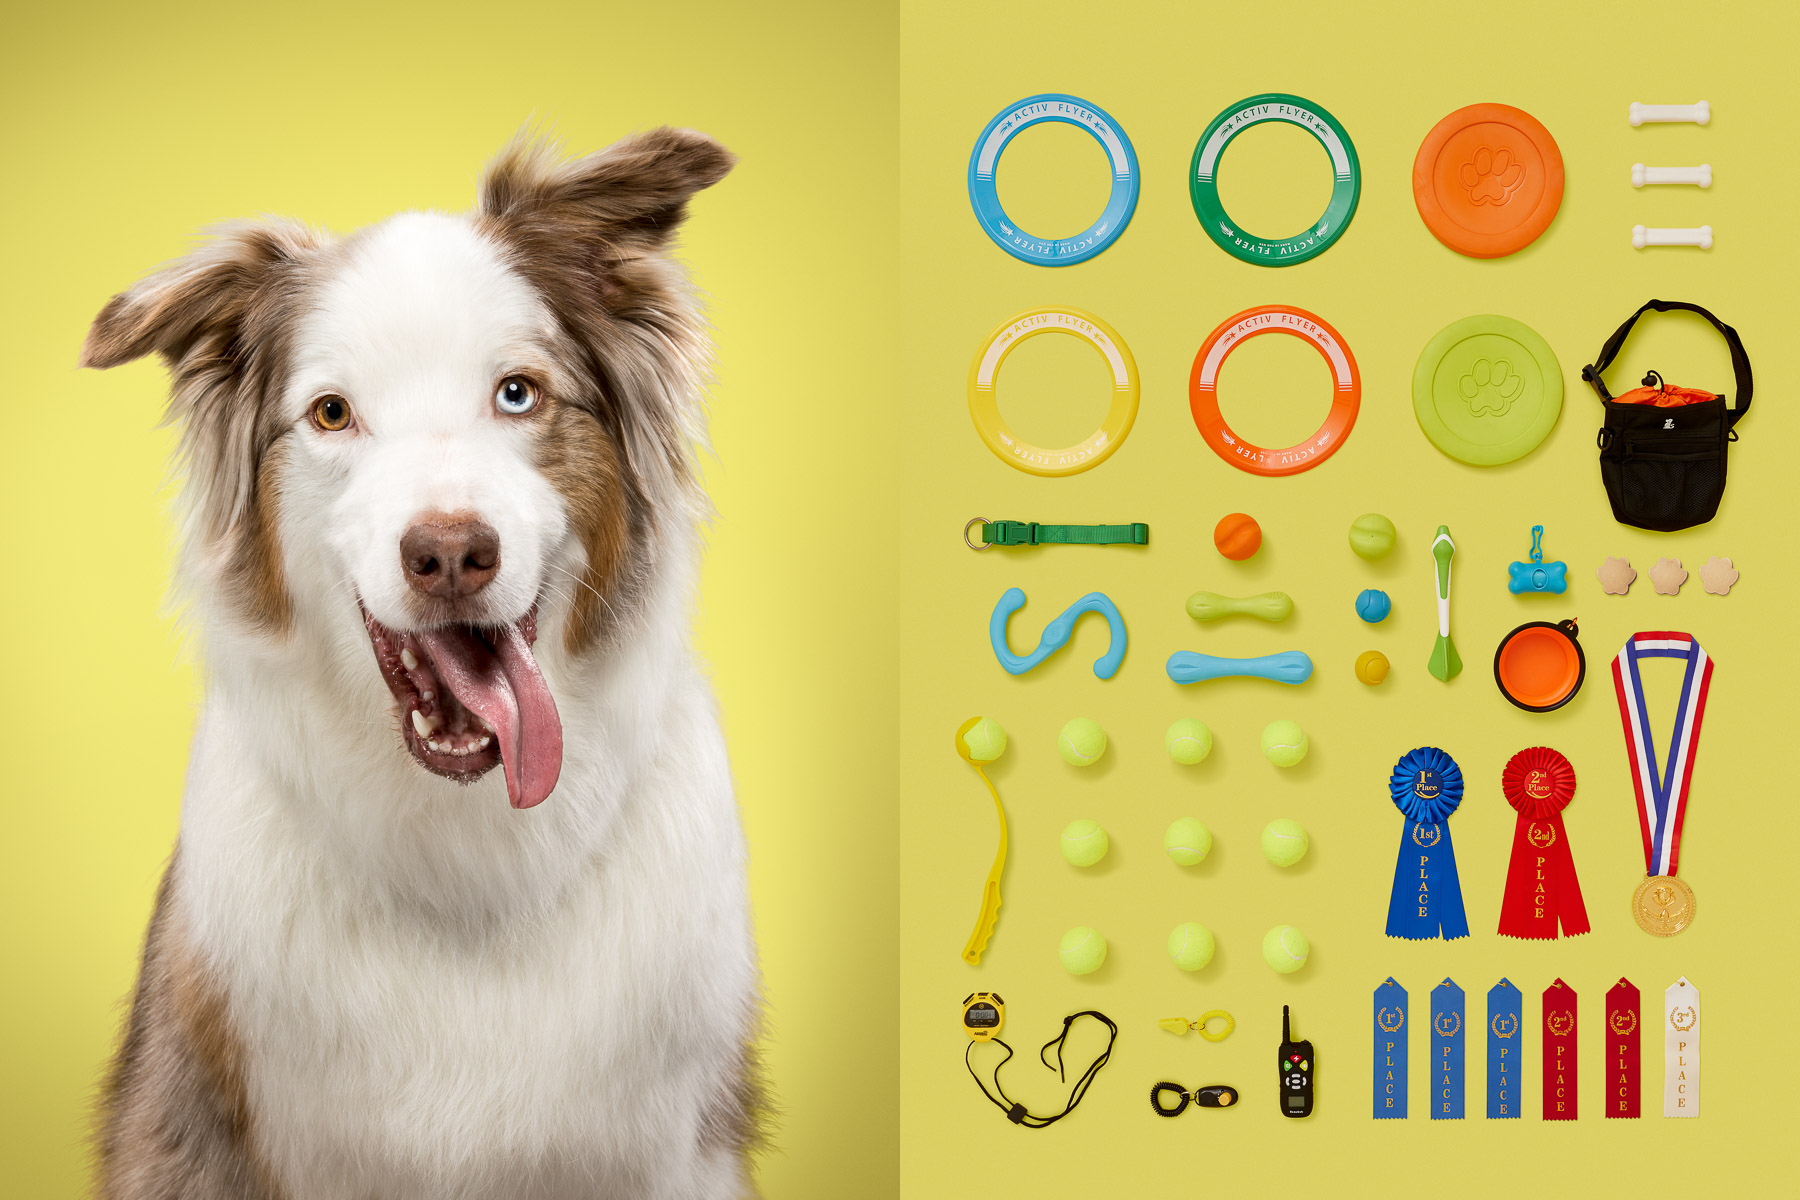 Dogs and their possessions: American revealed the essence of a dog's life